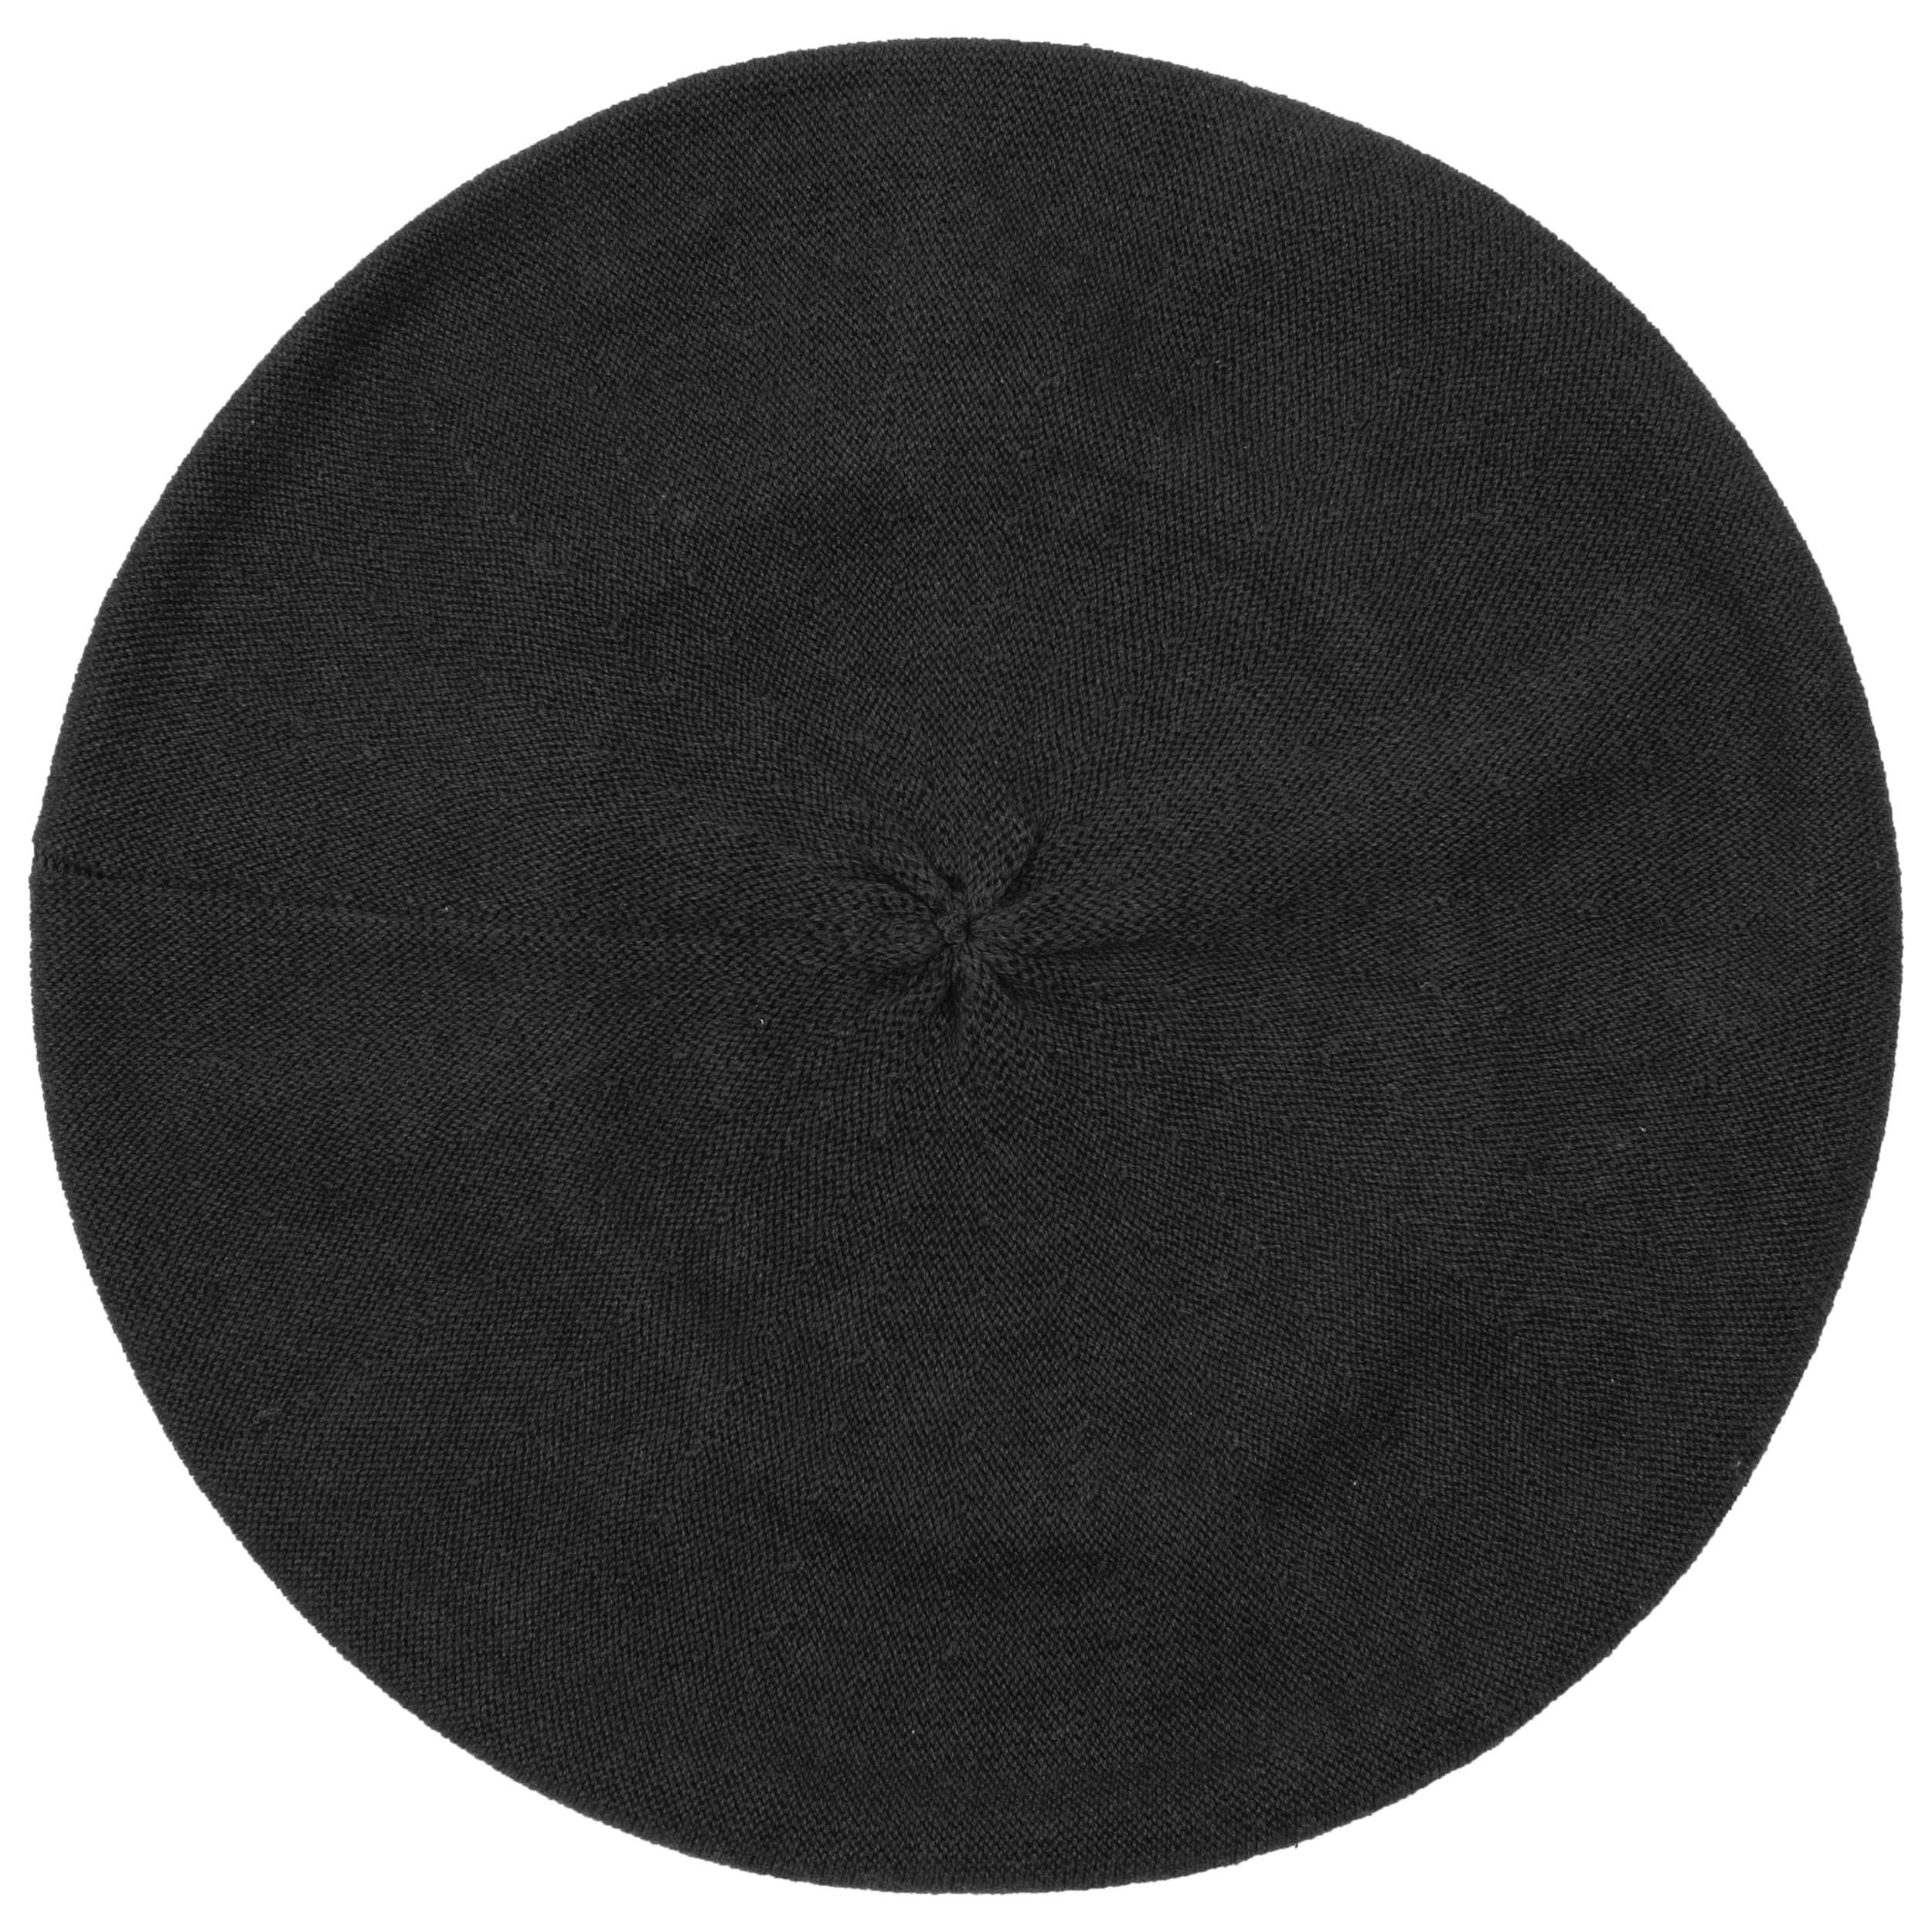 Beret in 100% new milled wool Seeberger black Seeberger qKMRH3B5y